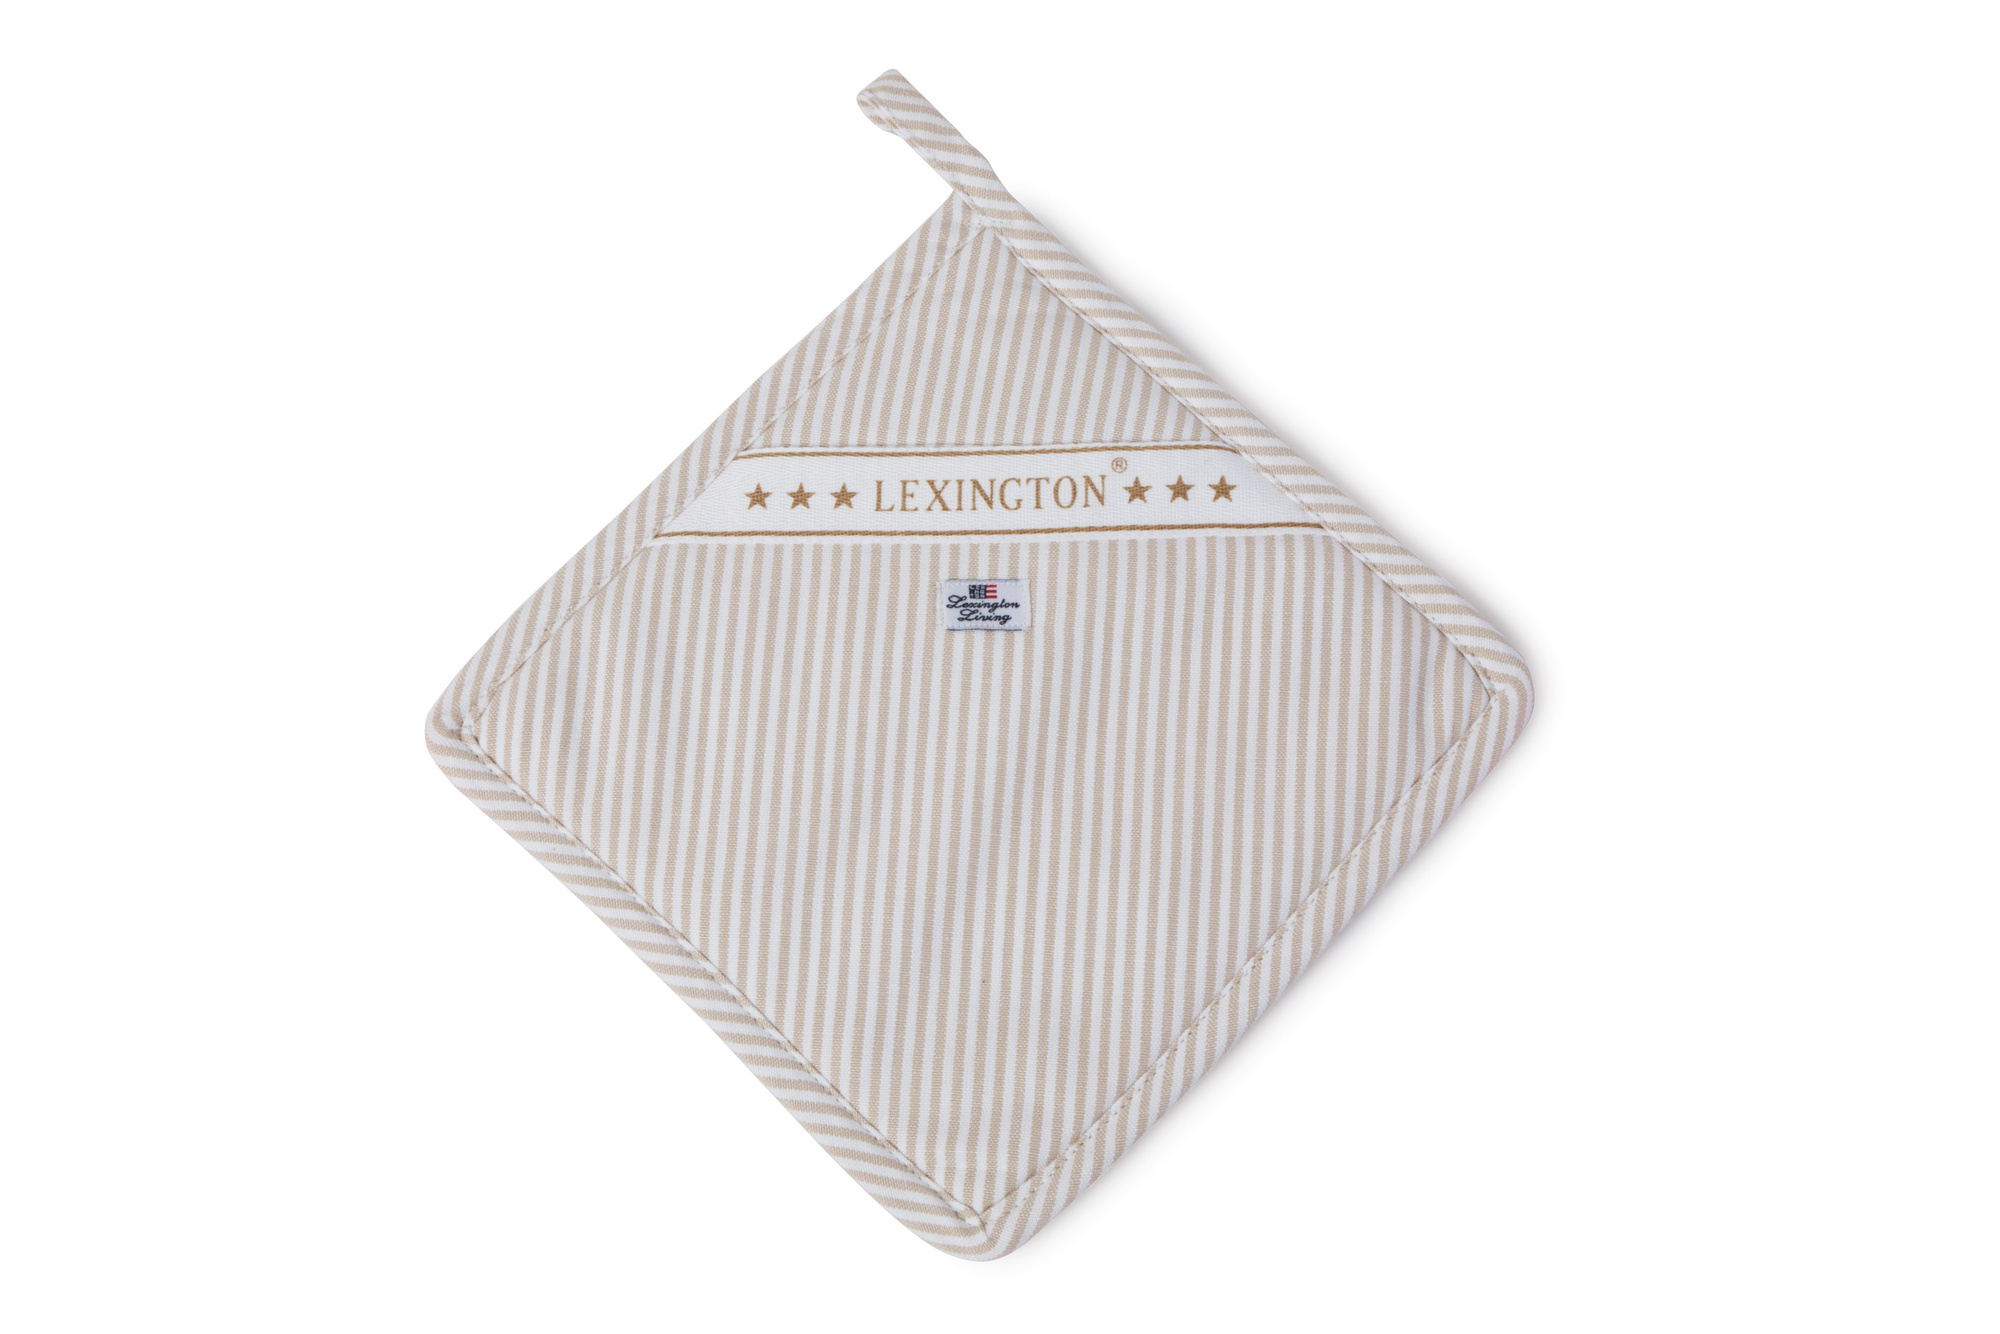 Oxford Beige/White Striped Potholder